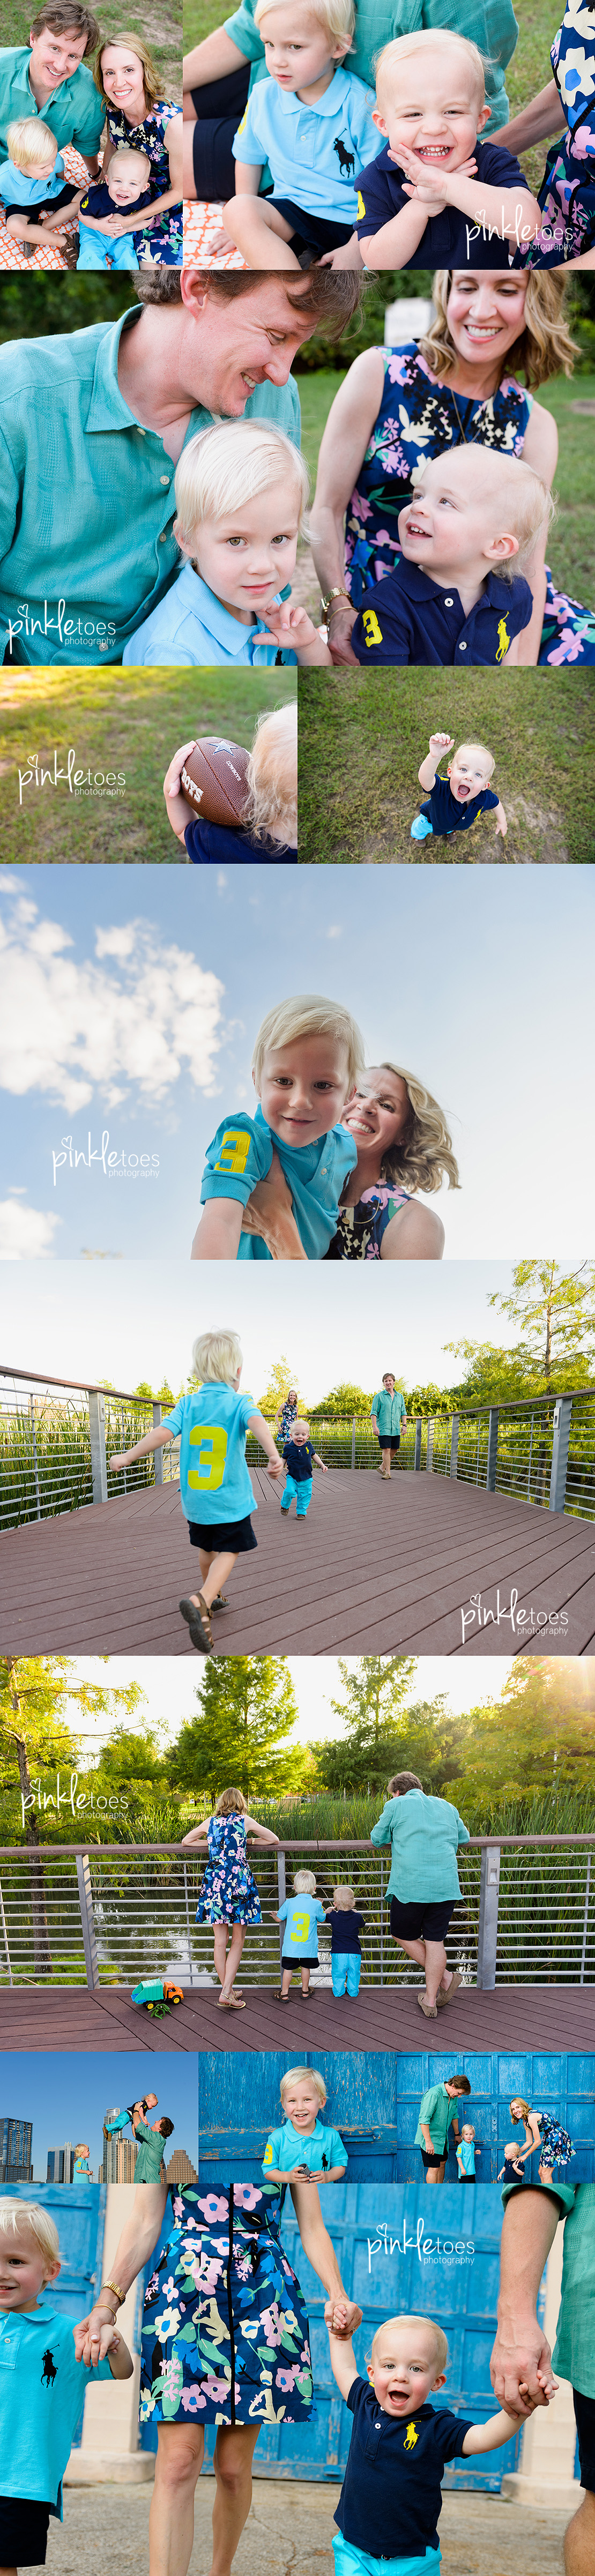 pinkle-toes-austin-kids-candid-photographer-downtown-austin